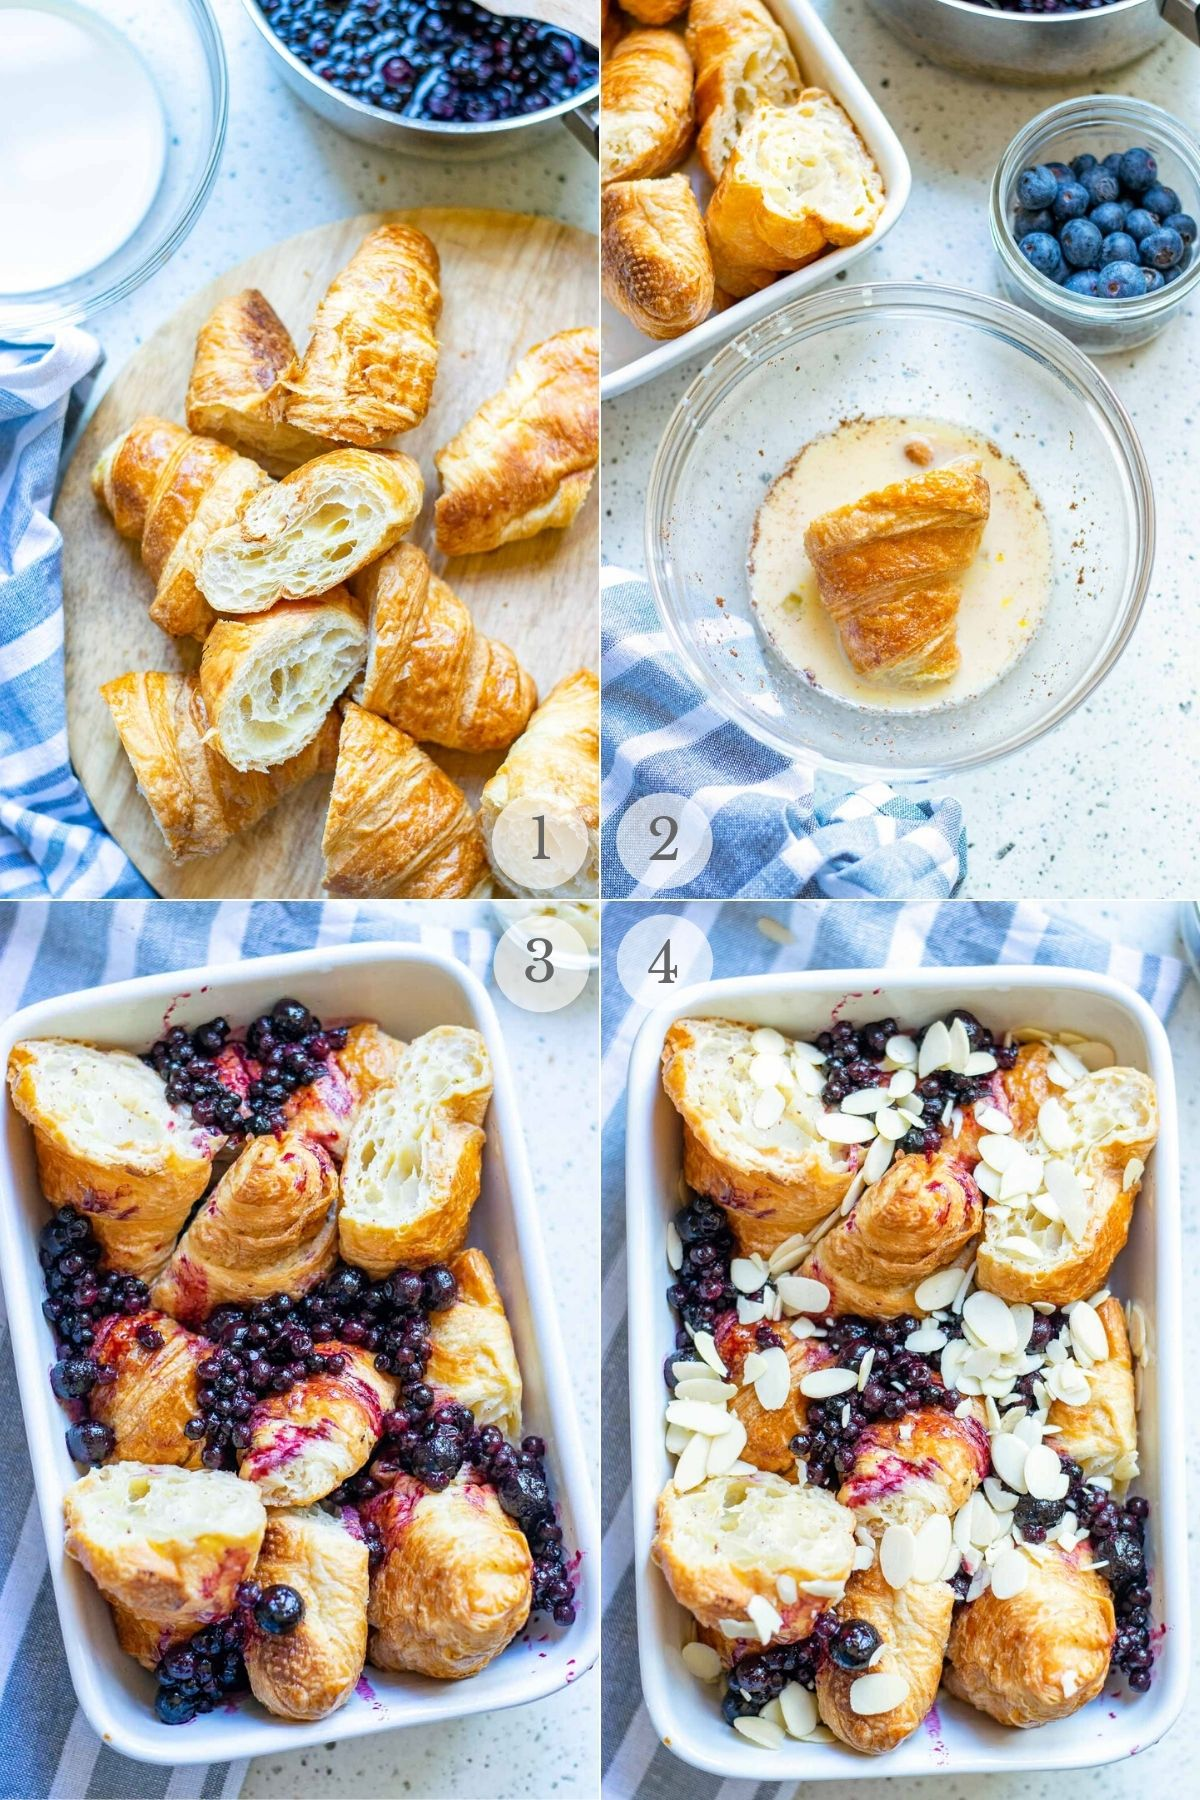 baked french toast recipe steps 1-4